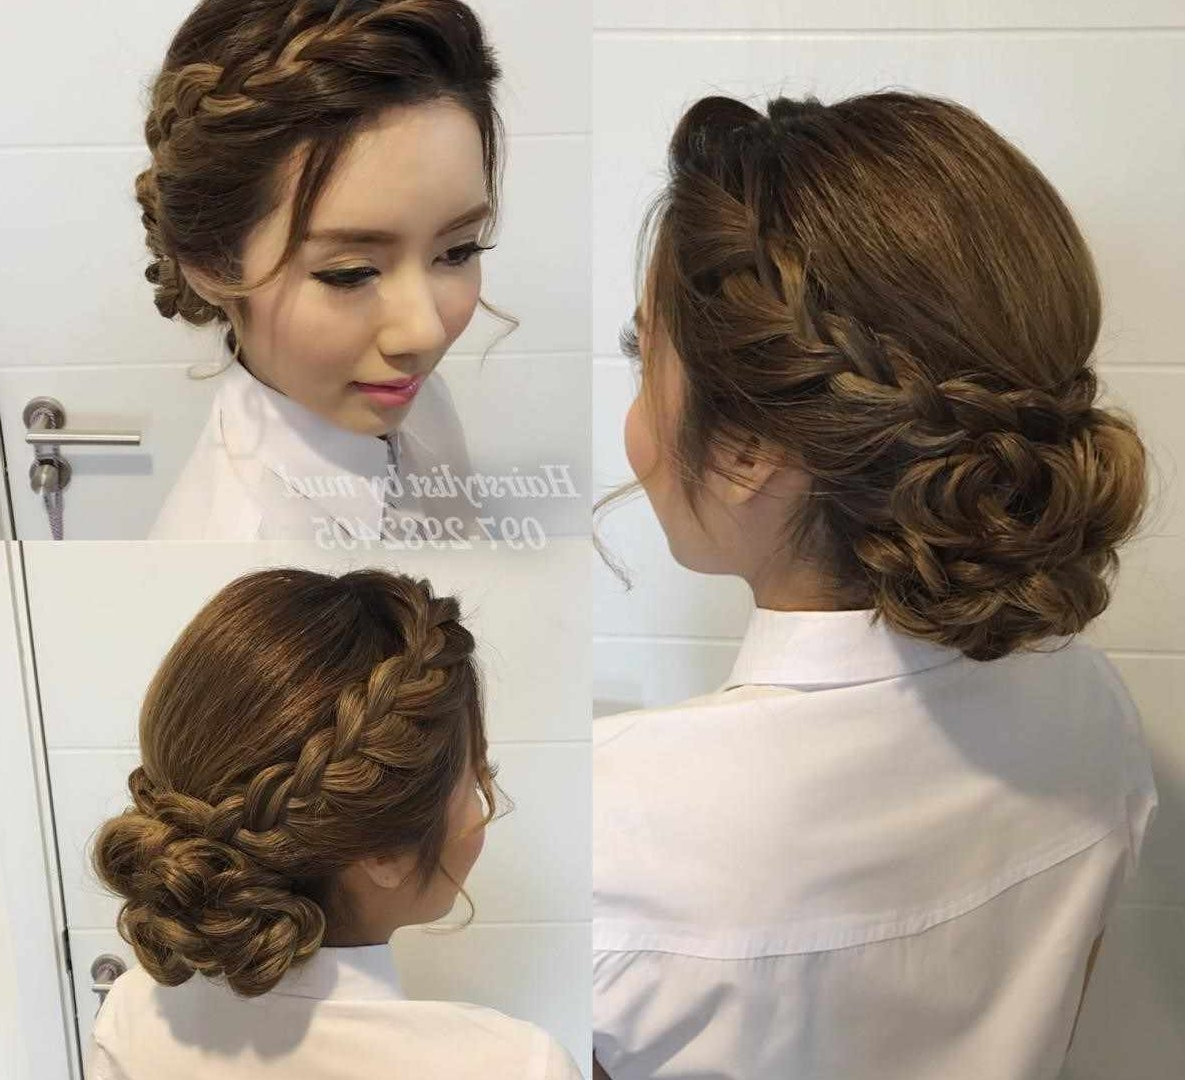 2017 Wedding Hairstyles For Shoulder Length Hair With Fringe Throughout Ideas Stunningdding Hairstyles For Medium Length Hair Half Up Easy (View 8 of 15)